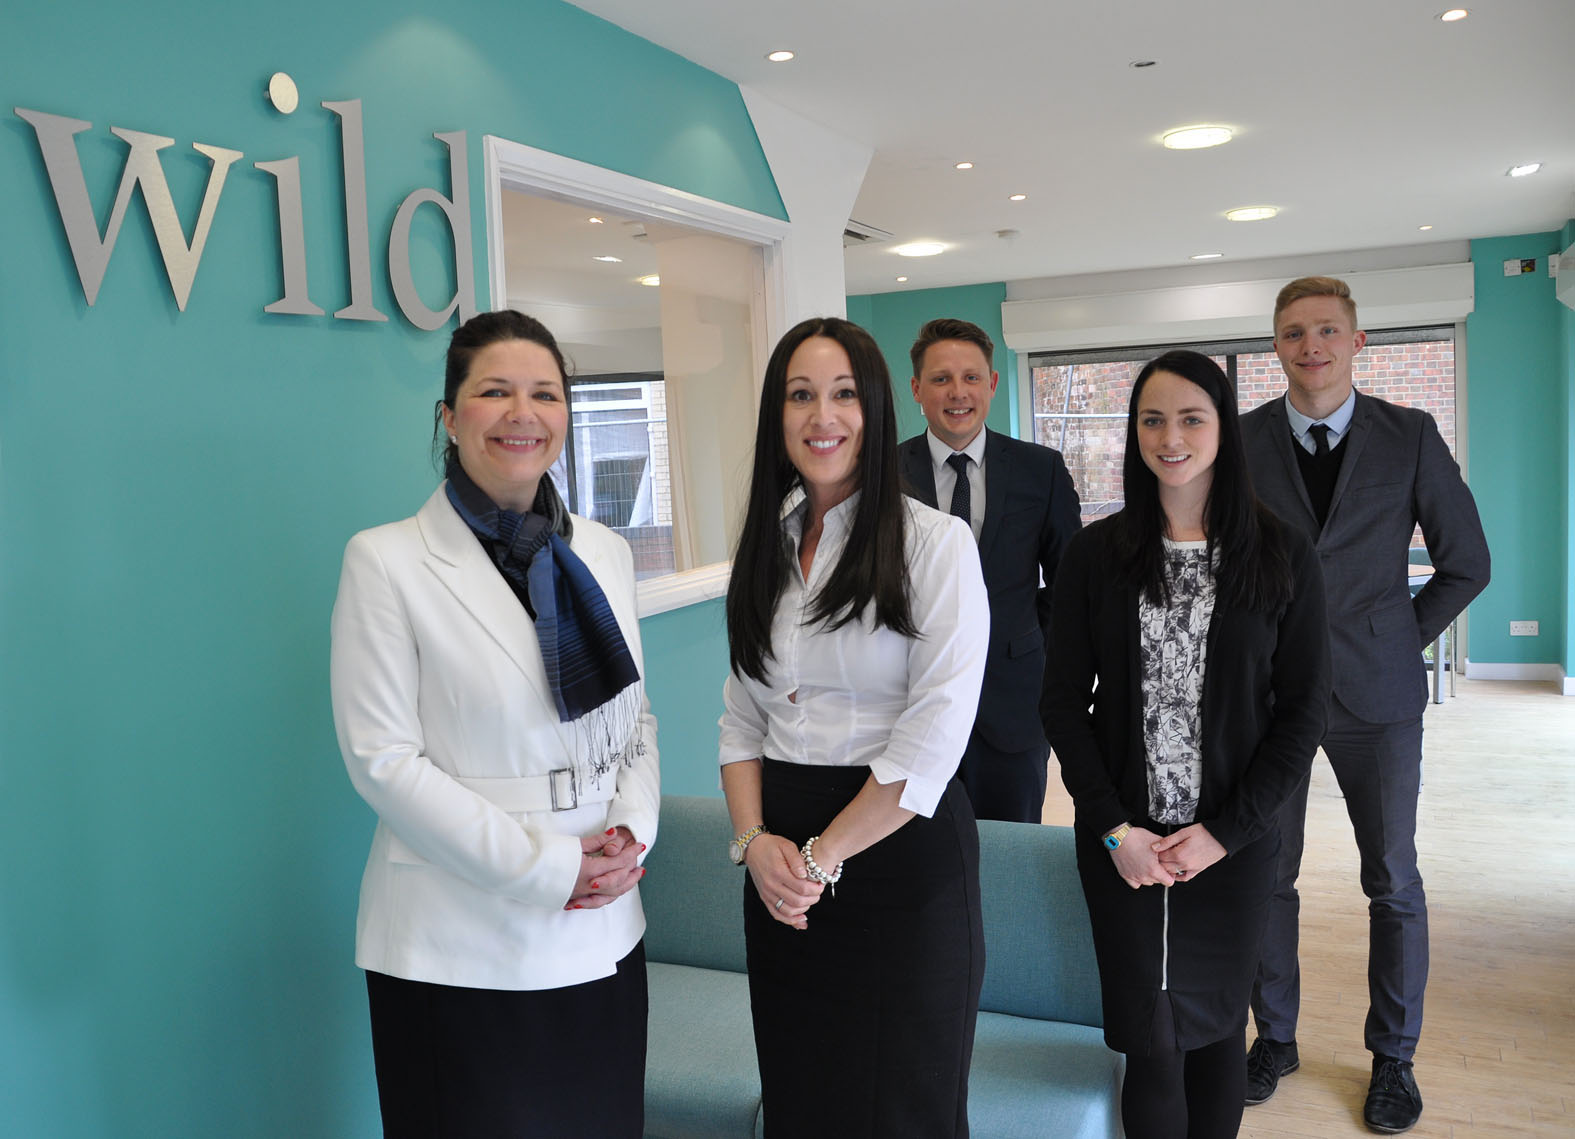 Wild in Poole: (l-r) Michelle Stewart and Kate Foley, with George Knijff Hayley Rumble and Chris Neesam.